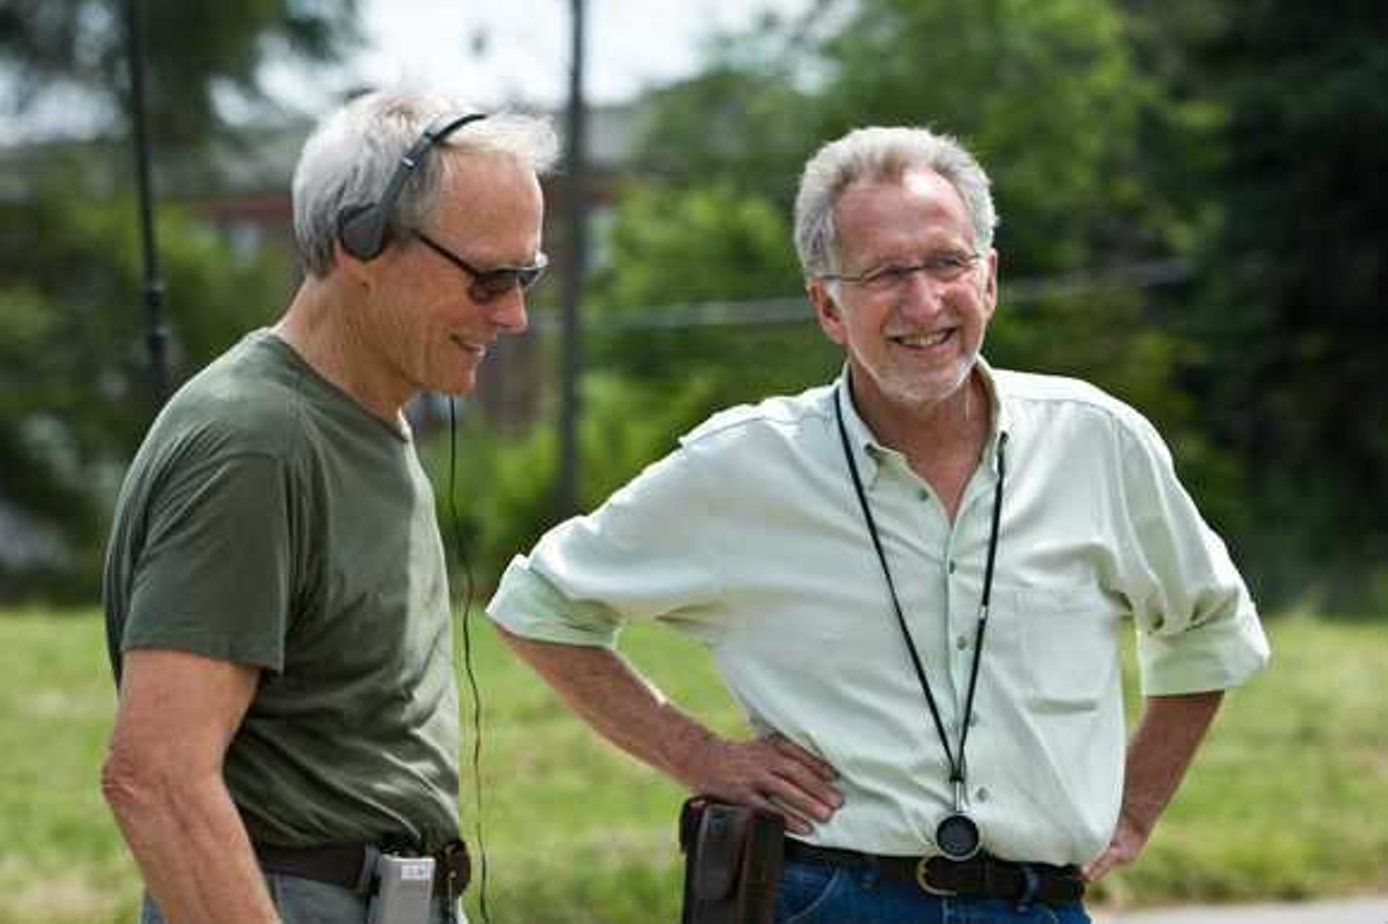 an analysis of concepts seen in gran torino a movie by clint eastwood